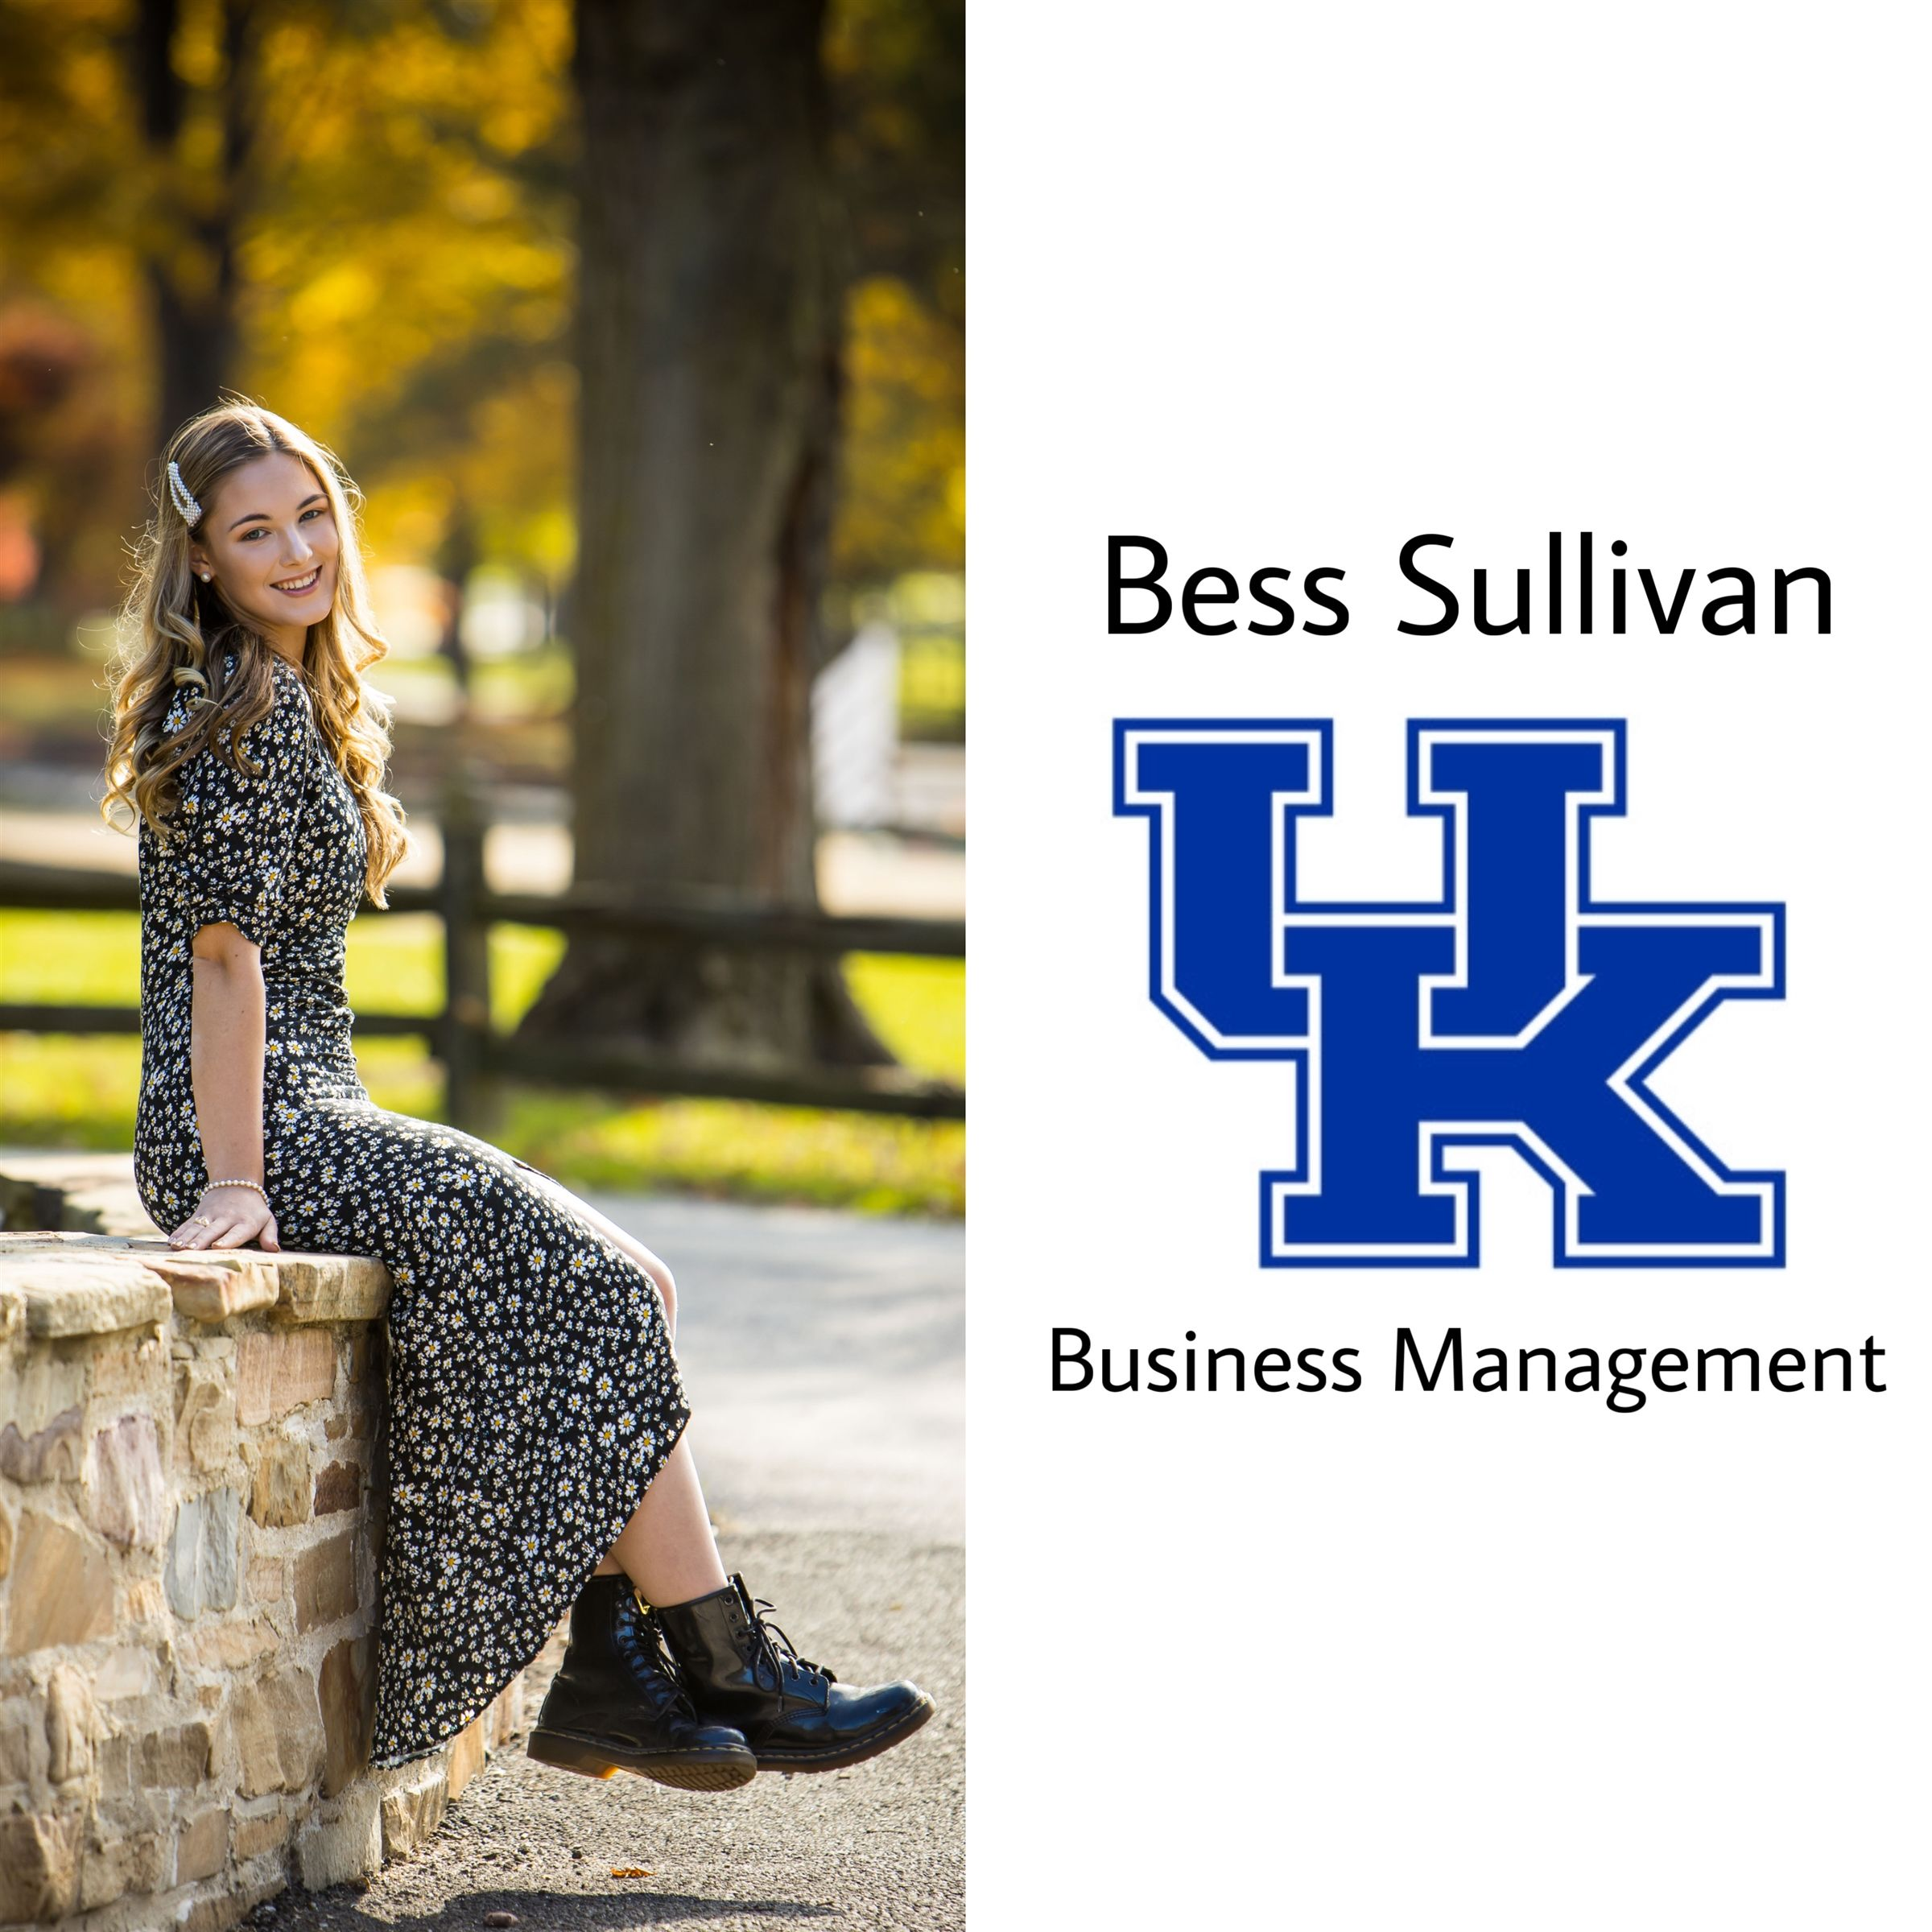 BESS IS KENTUCKY BOUND!! She will be studying business management at the University of Kentucky as well as continuing her riding career in Lexington! So proud! Congrats!!